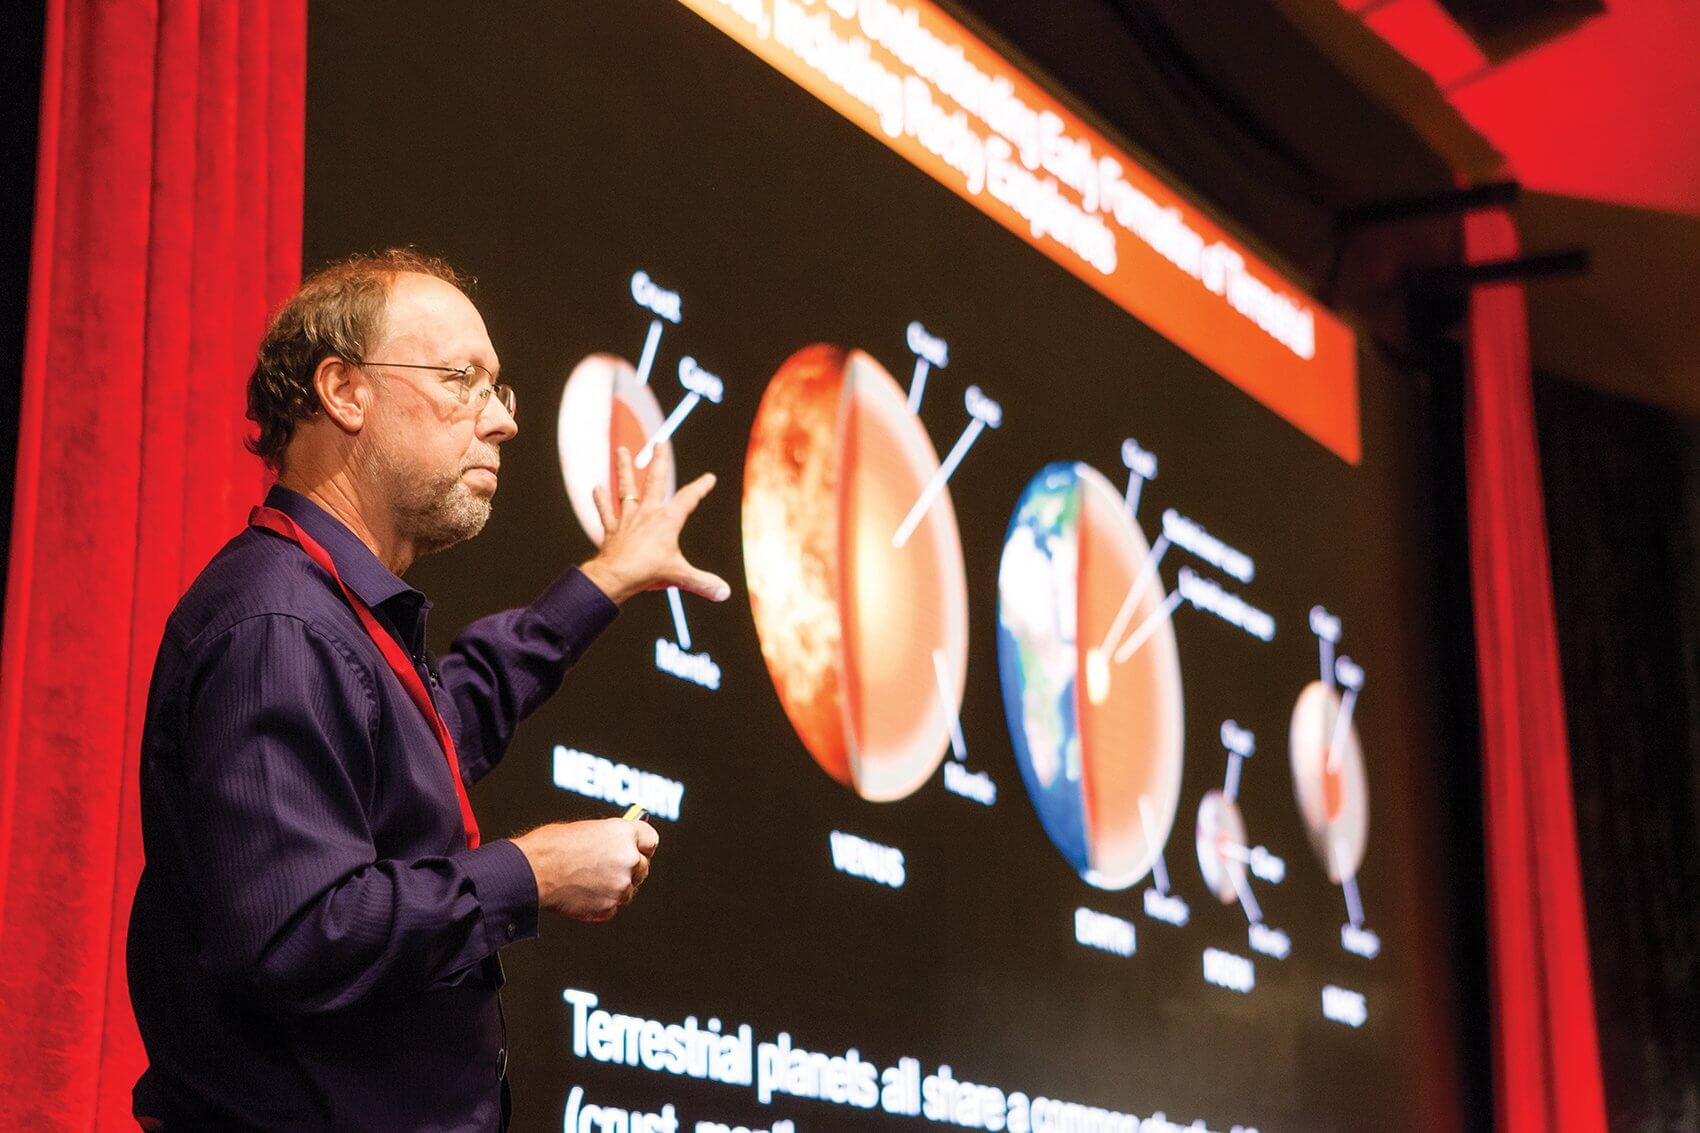 Bruce Banerdt, Ph.D., senior scientist and principal investigator for the InSight Lander Mission to Mars at the Jet Propulsion Laboratory, explores the geology of earth-like planets and the future of InSight Lander missions.